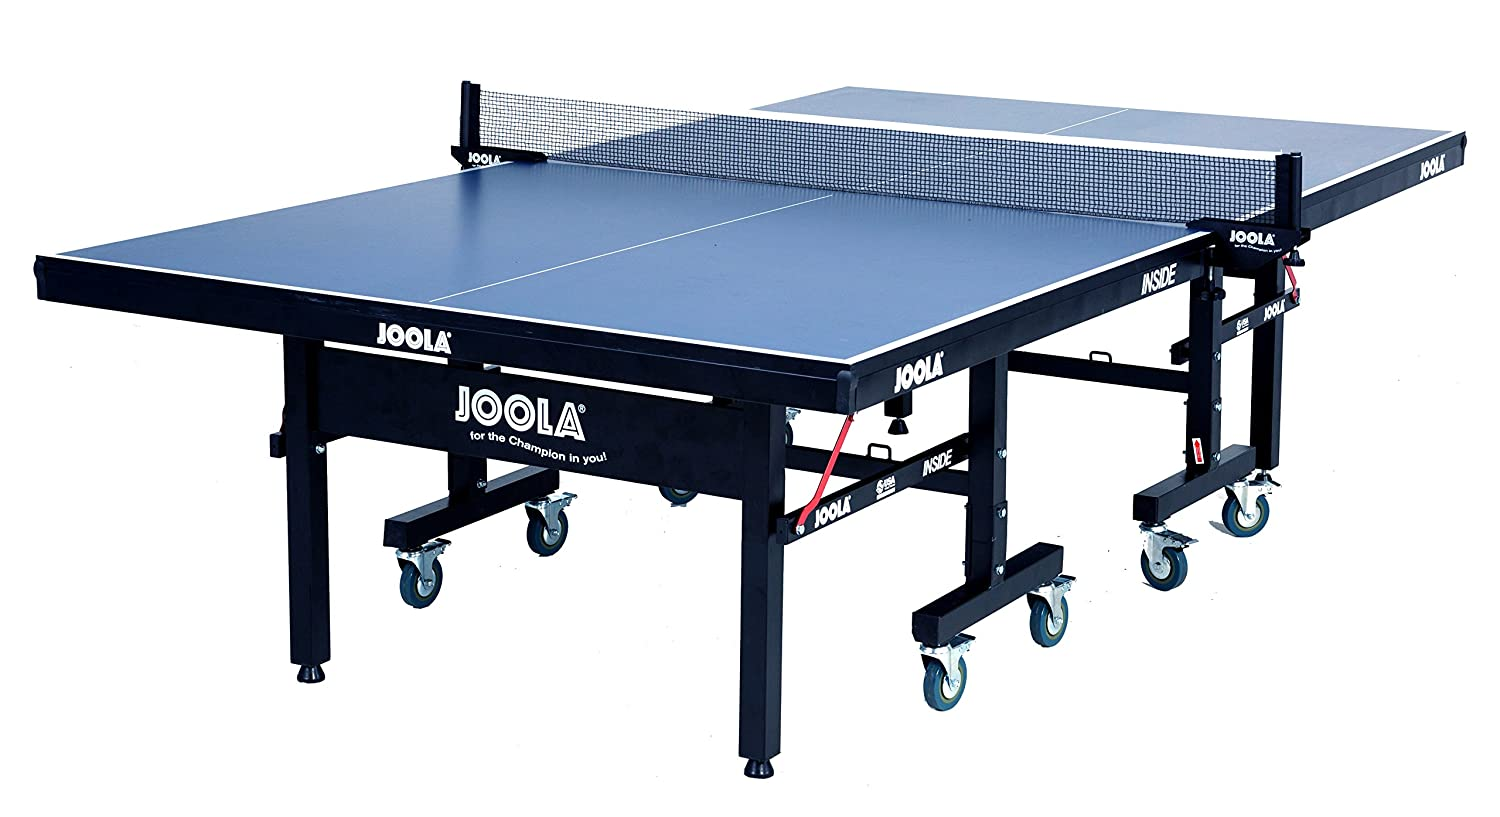 JOOLA Inside Table Tennis Table with Net Set (Editor's Choice)